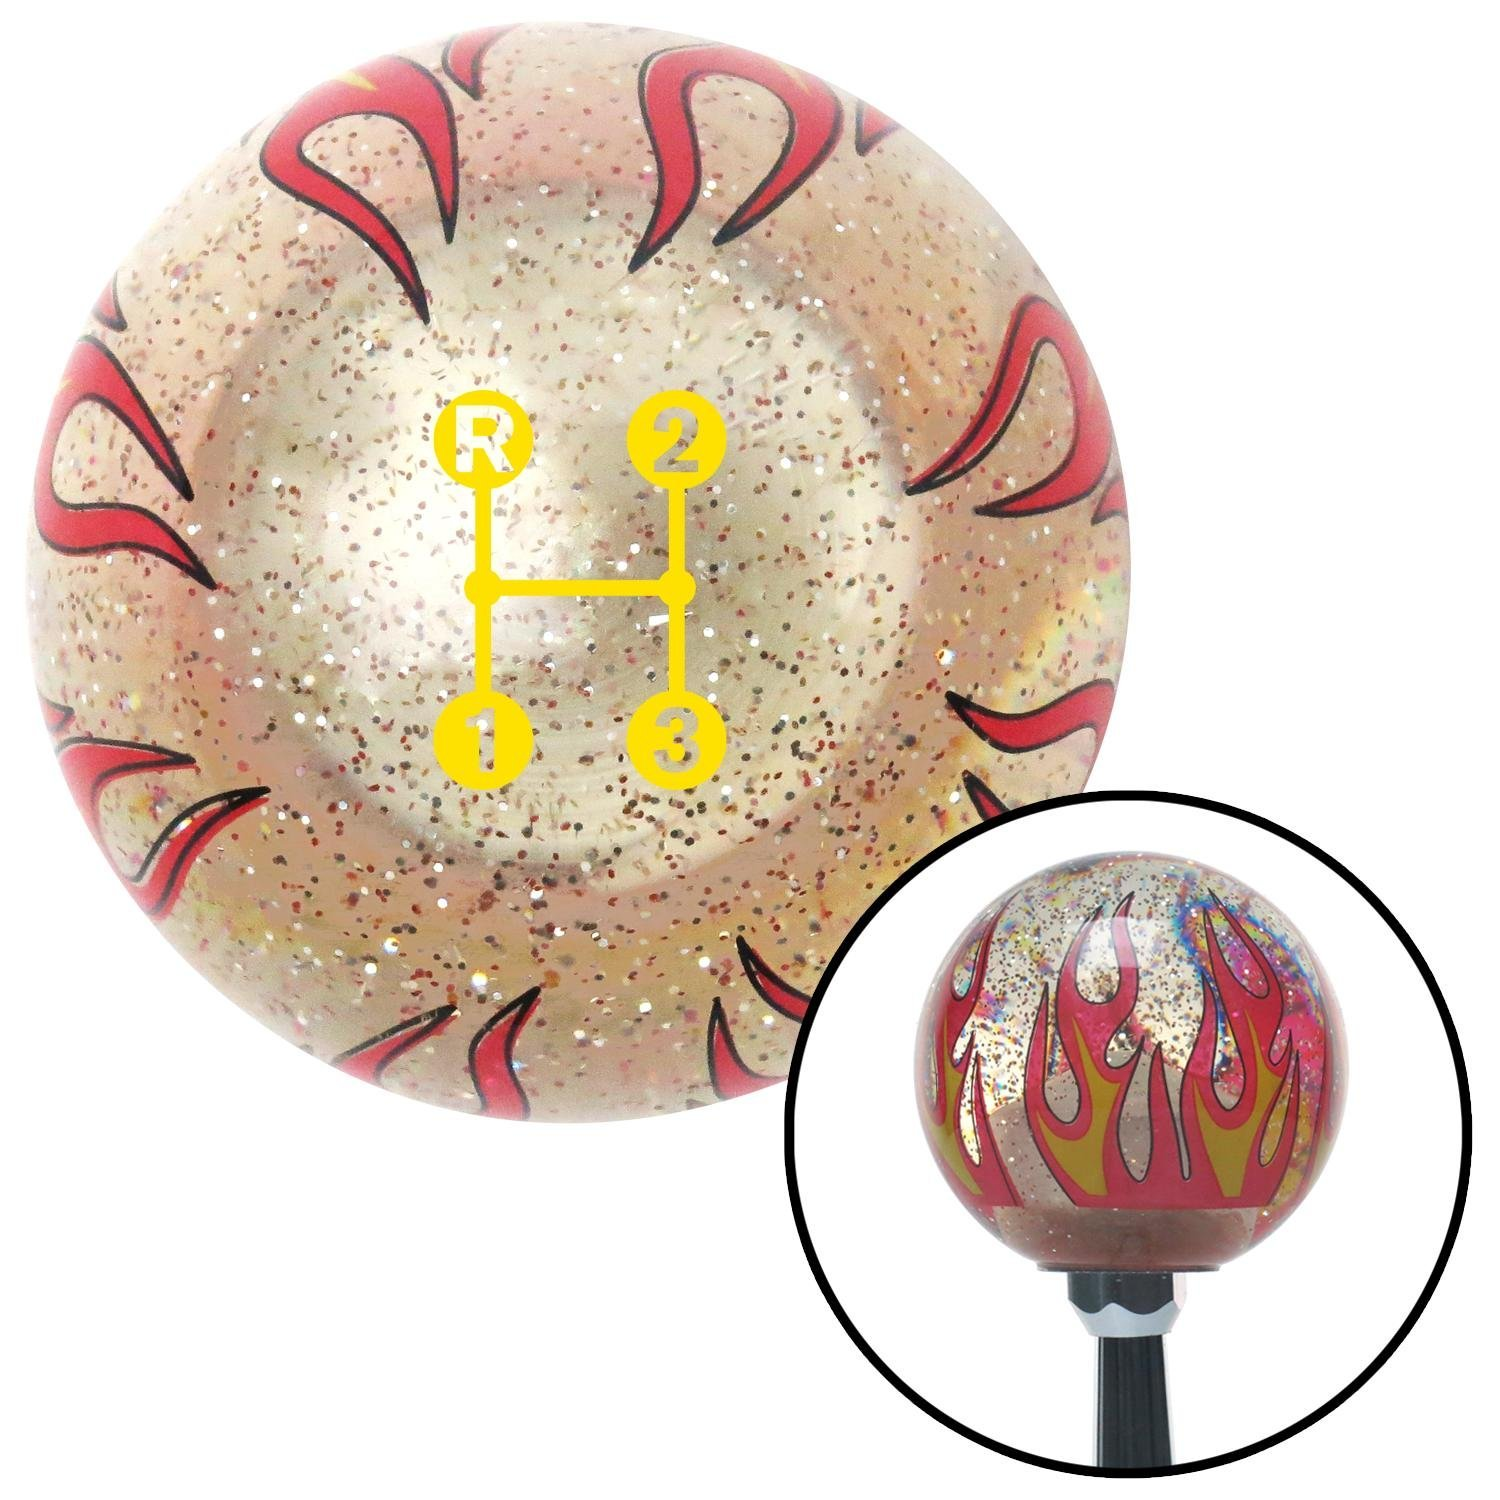 American Shifter 295940 Shift Knob Yellow 3 Speed Shift Pattern - Dots 11n Clear Flame Metal Flake with M16 x 1.5 Insert